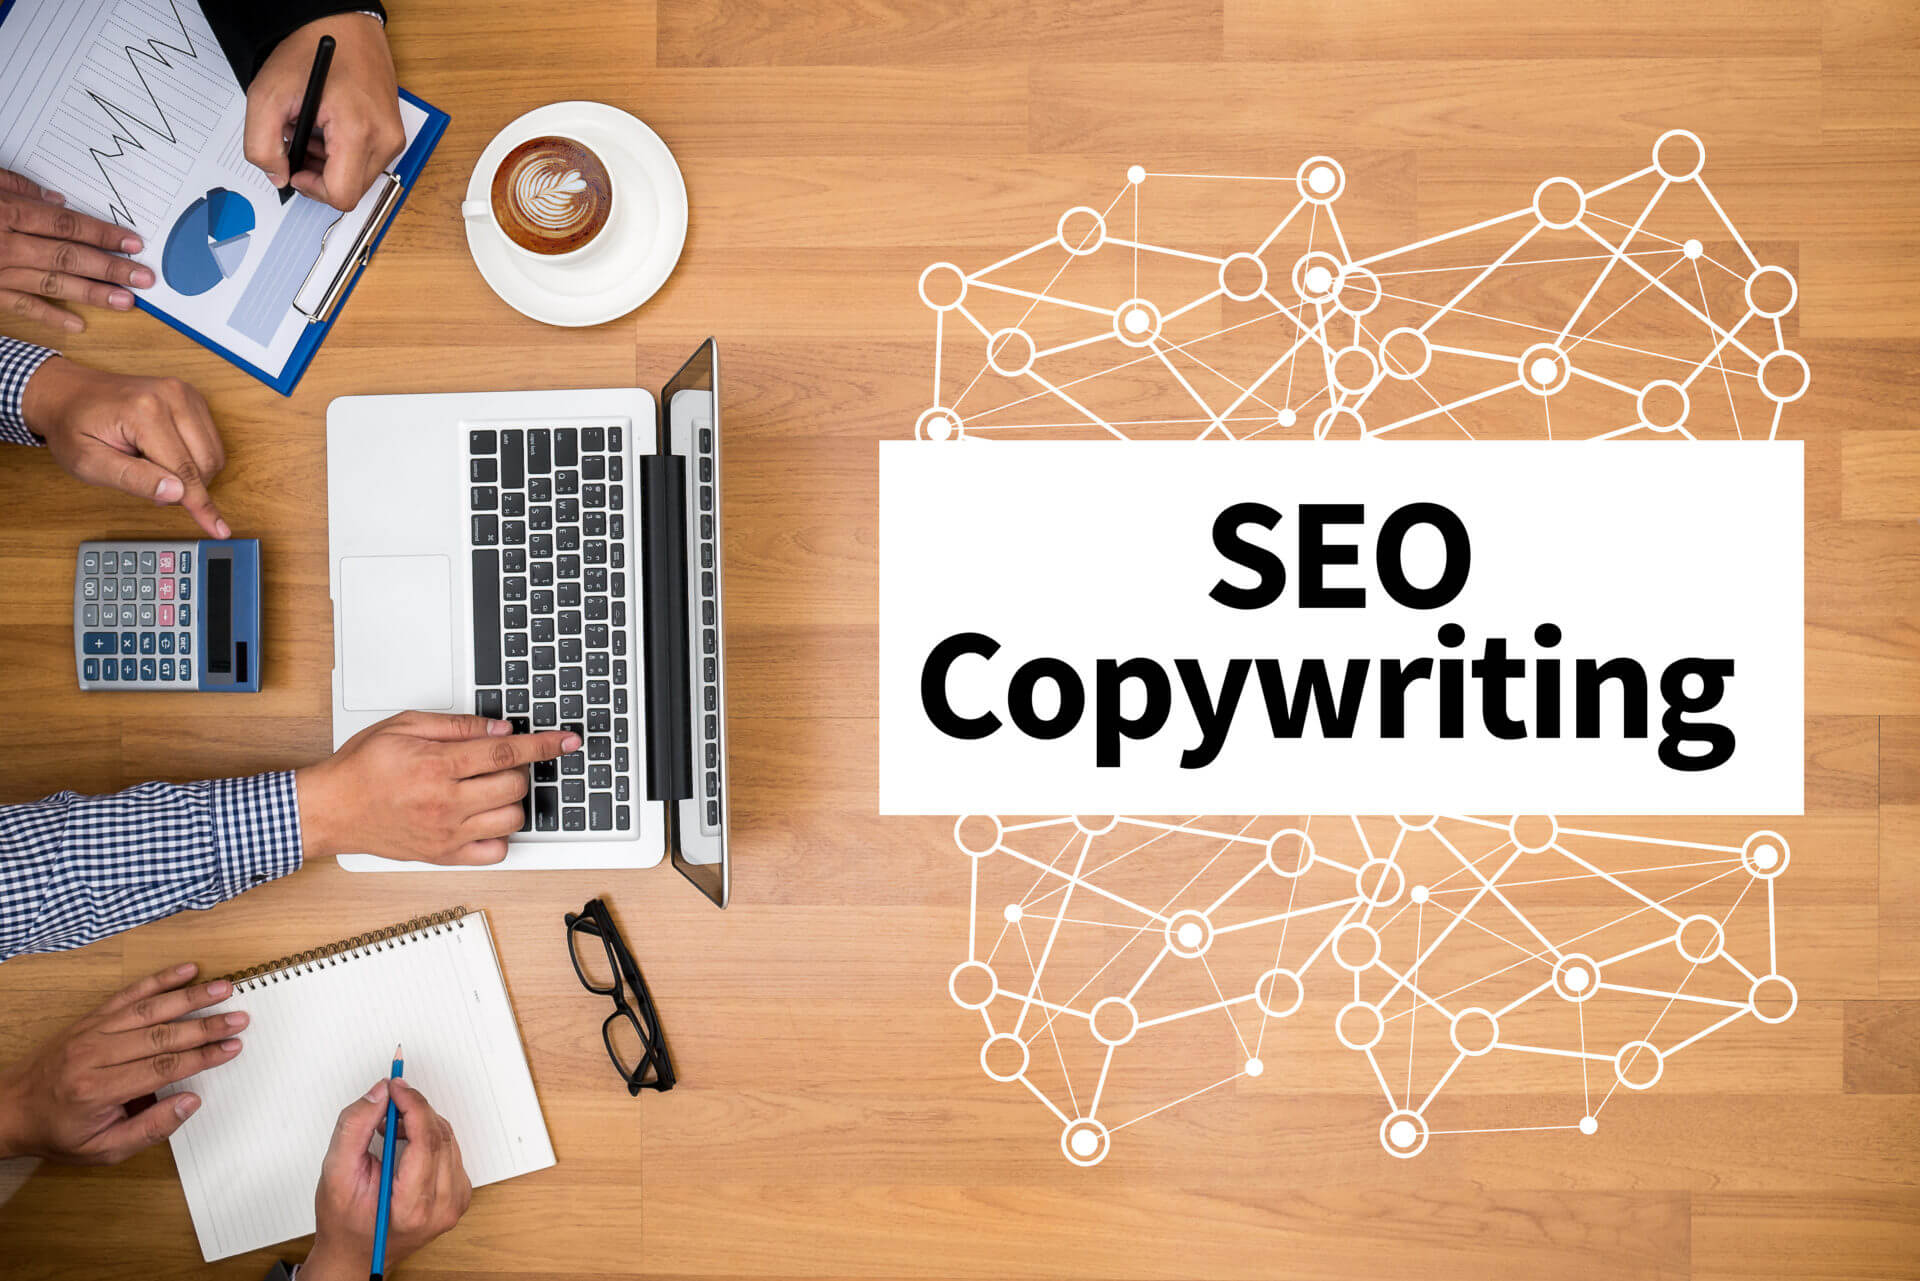 6 SEO Copywriting Mistakes That Might be Costing You Credibility